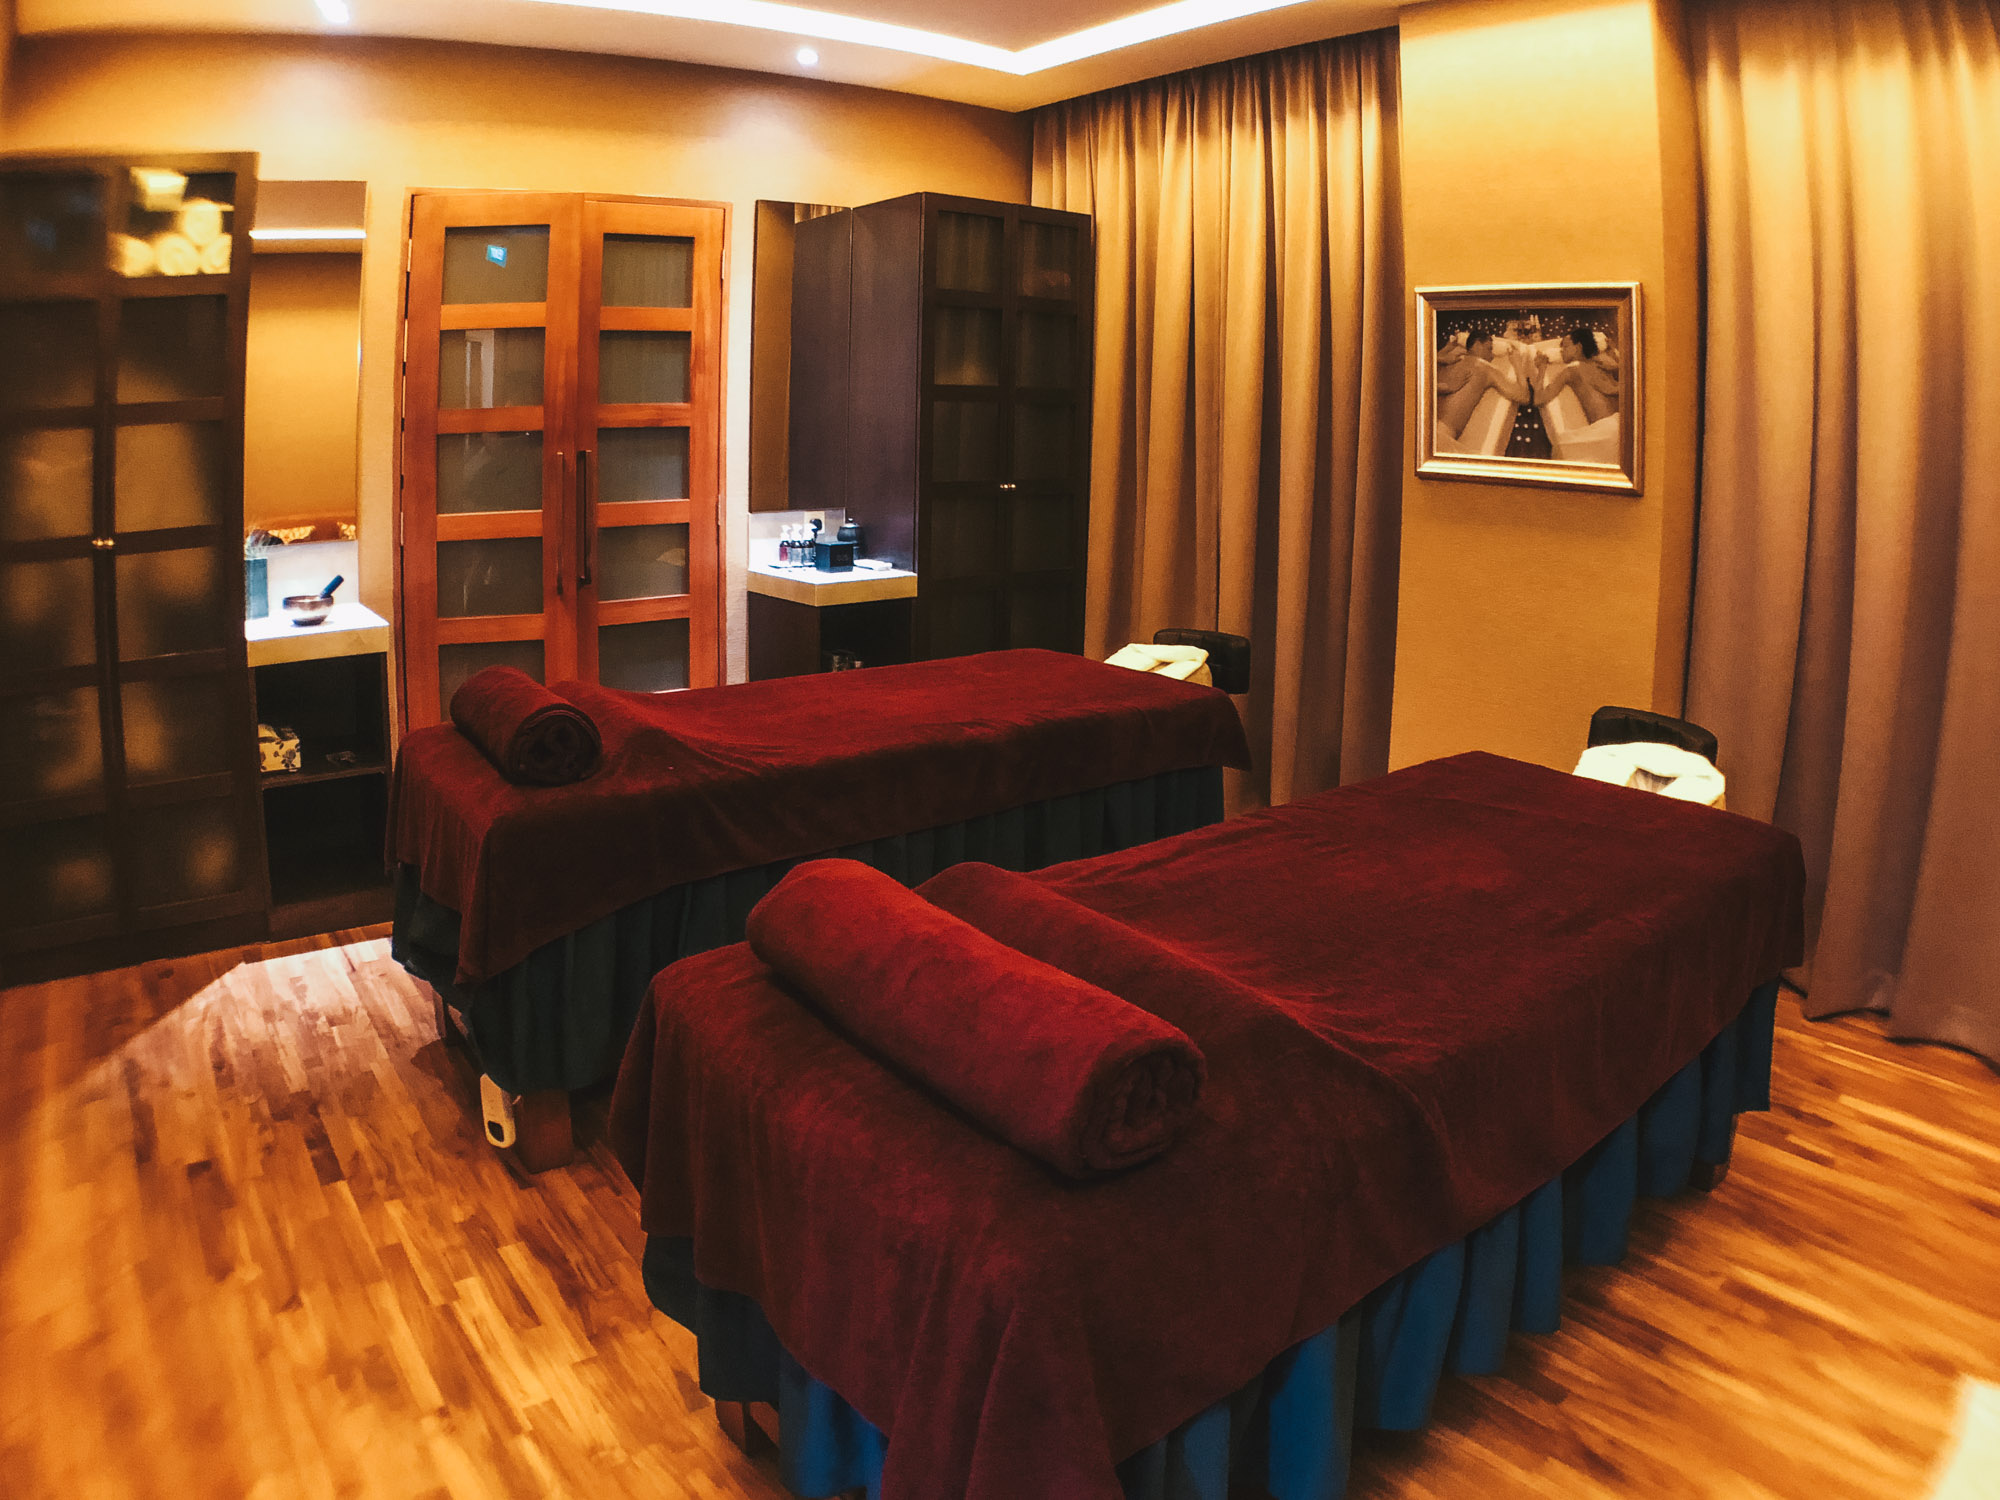 New spa experience at marriott tang plaza serena spa for Adam eve salon